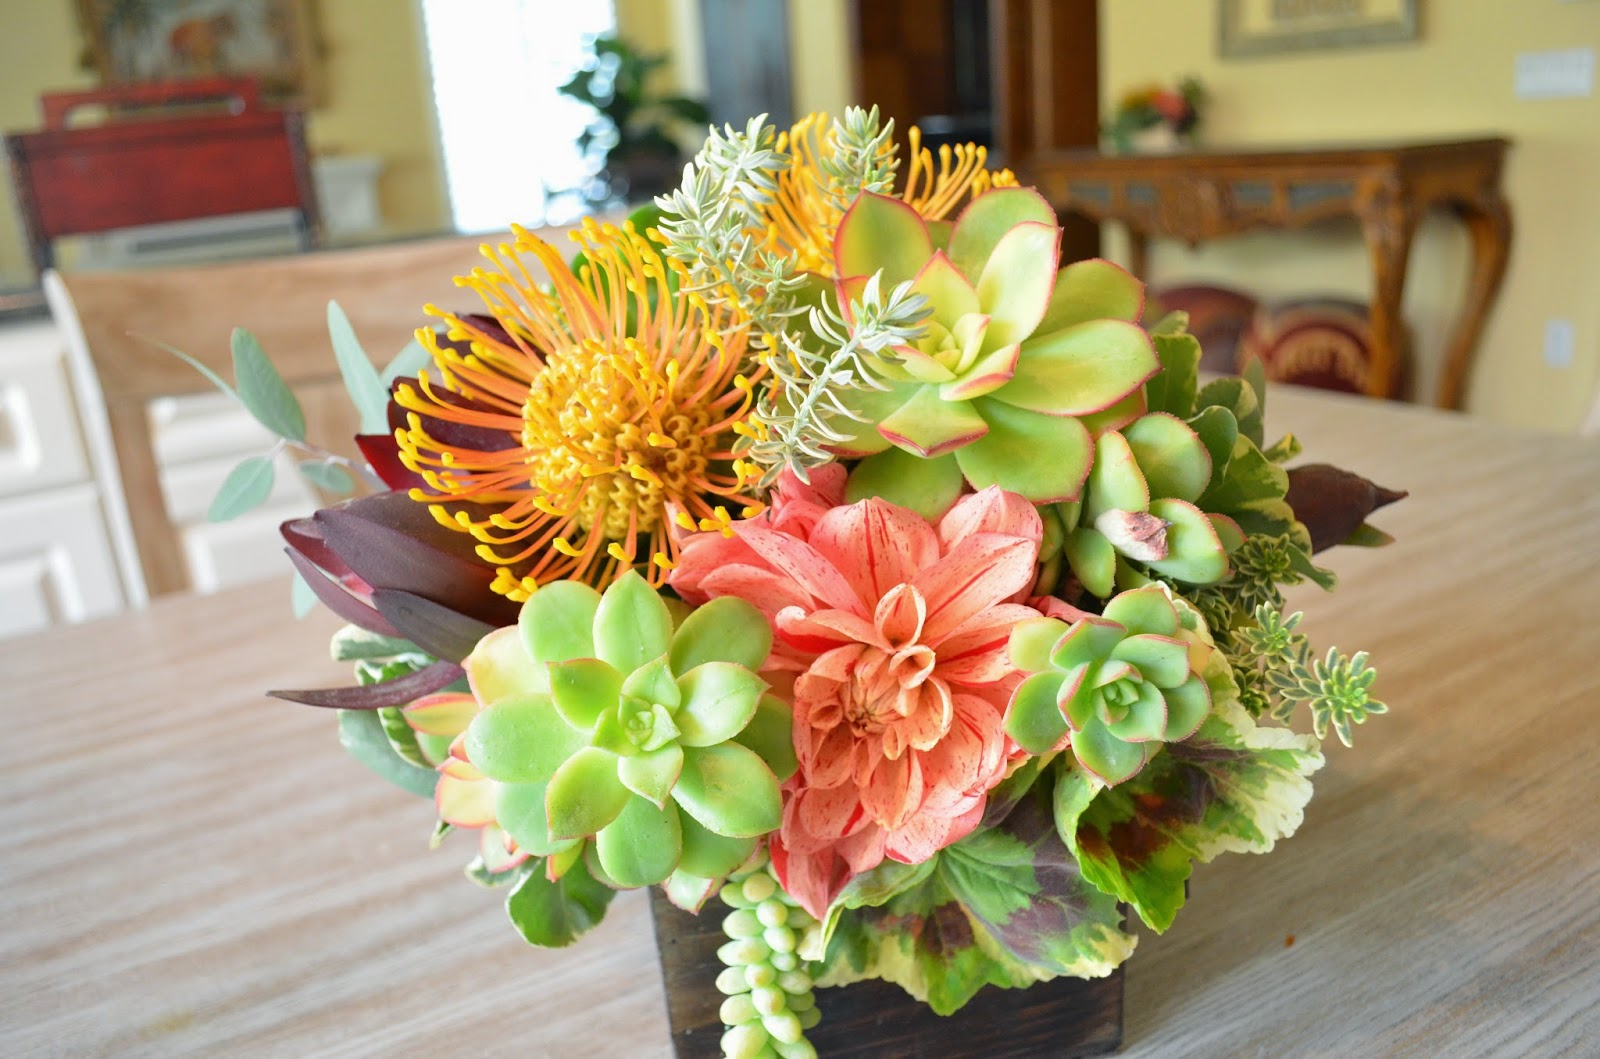 I am plying with my favorite combination pincushion proteas, succulents and  dahlias for my weekly arrangements around the house.